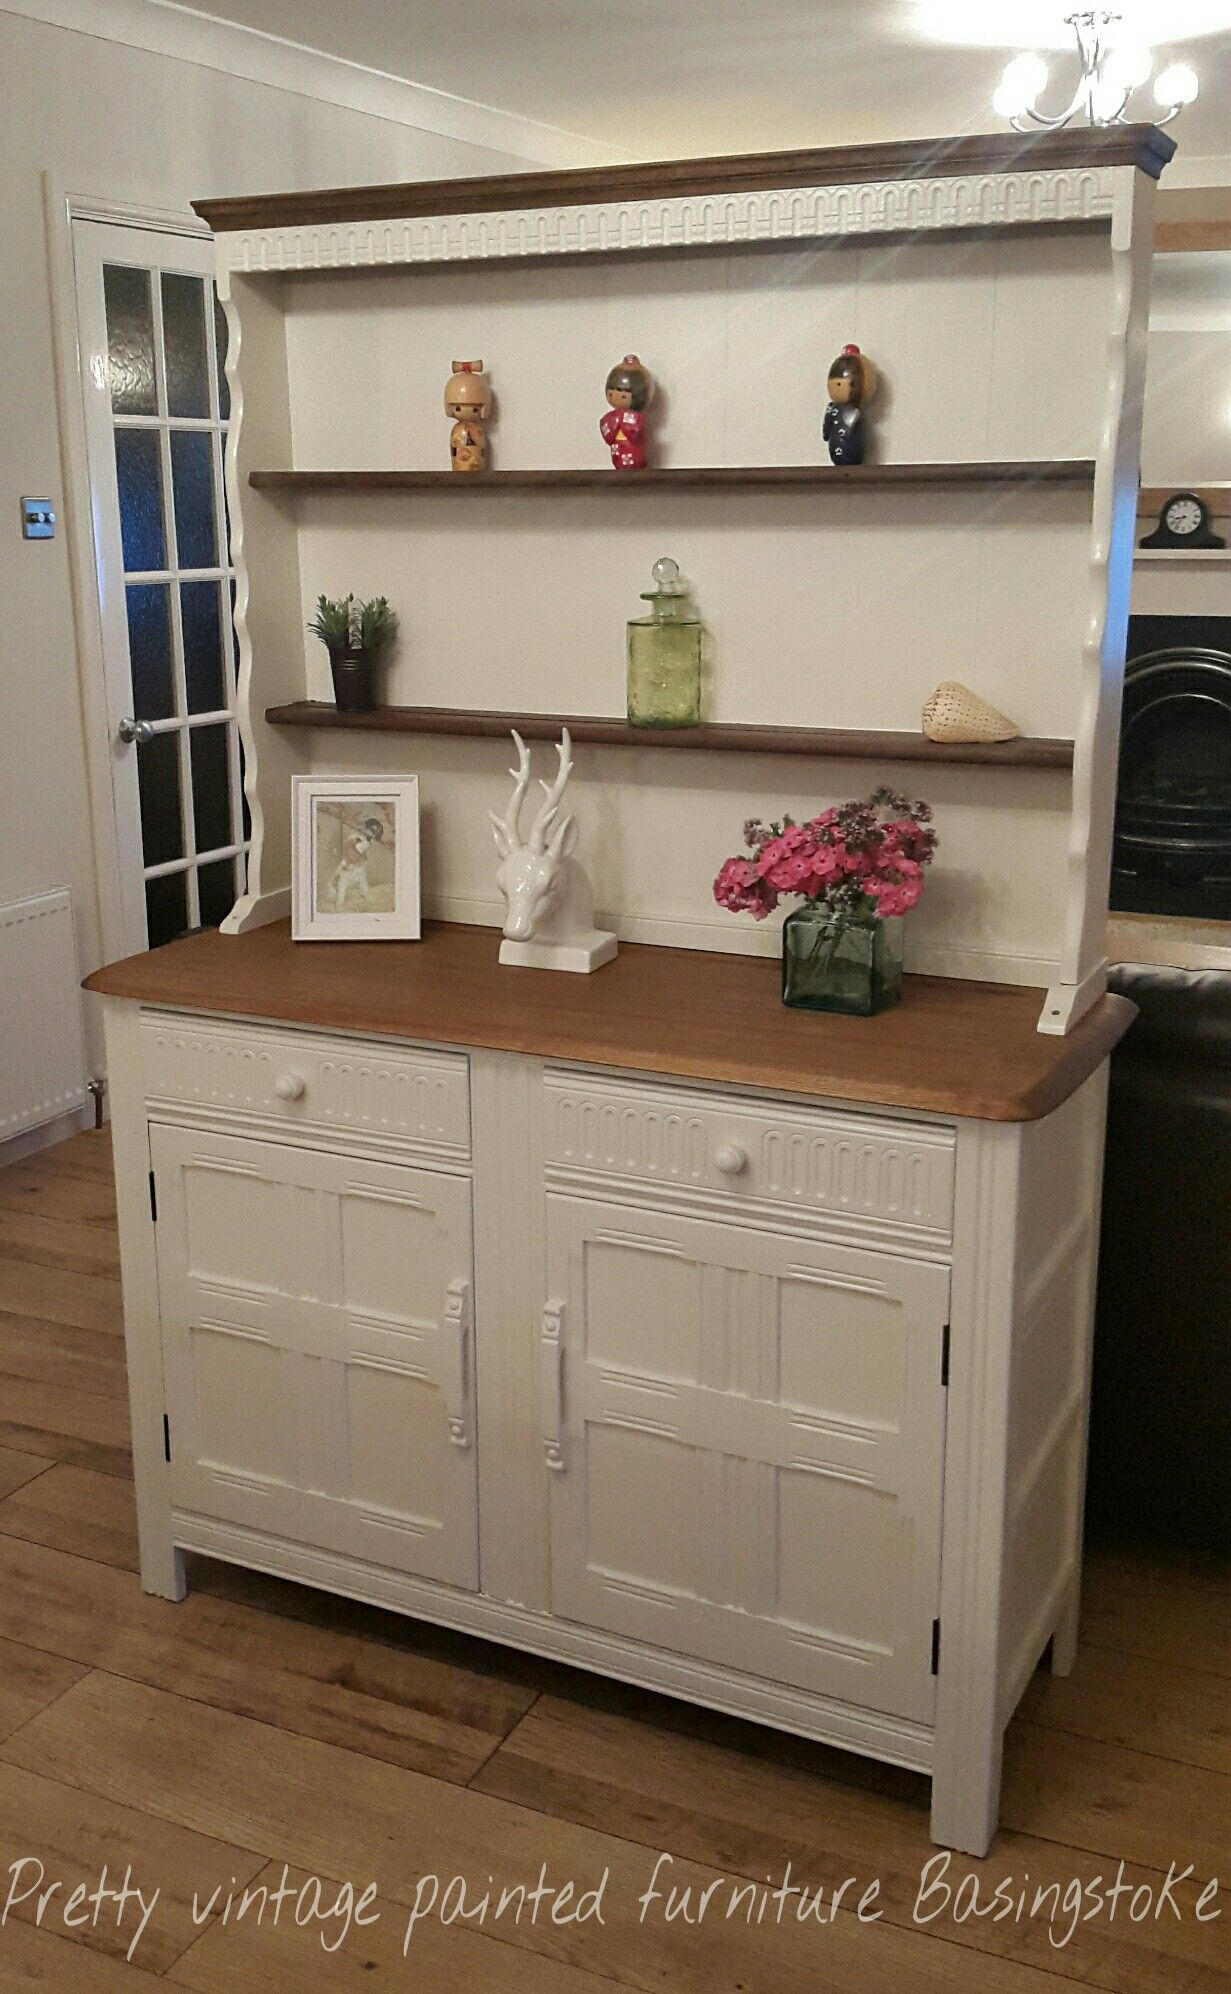 Eggshell Kitchen Cabinets Vintage Priory Painted Welsh Dresser In Farrow Ball Slipper